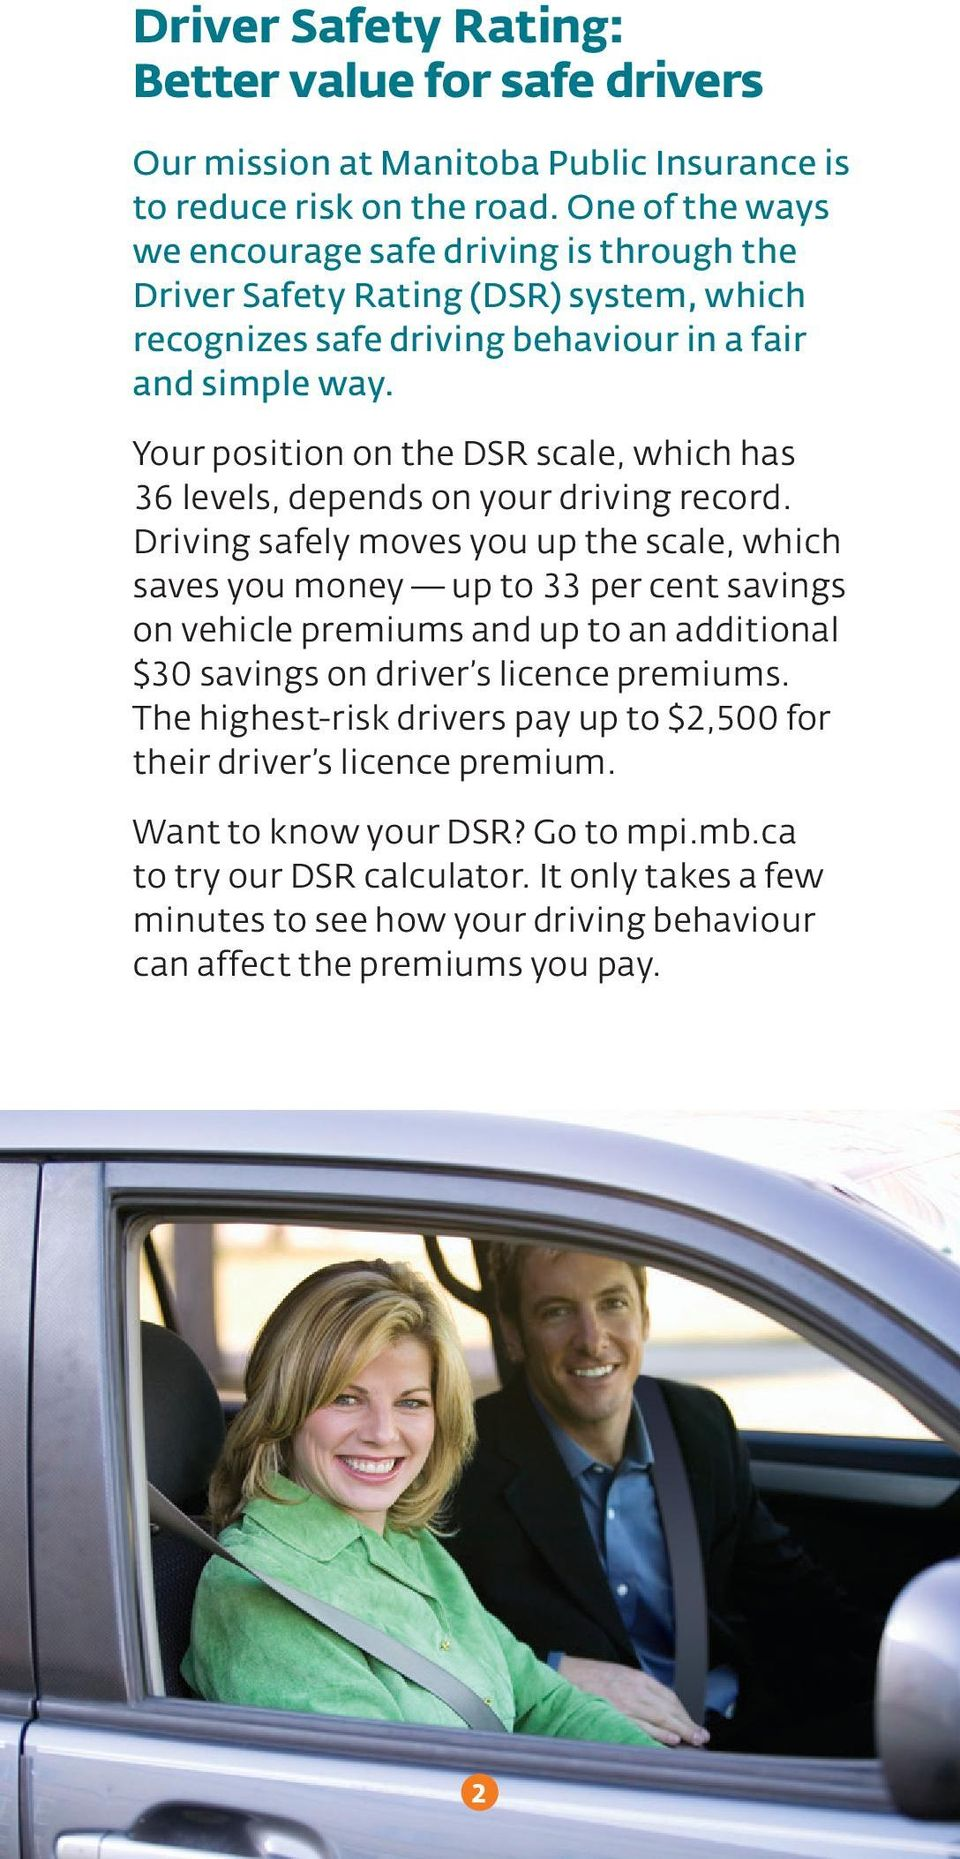 Your position on the DSR scale, which has 36 levels, depends on your driving record.